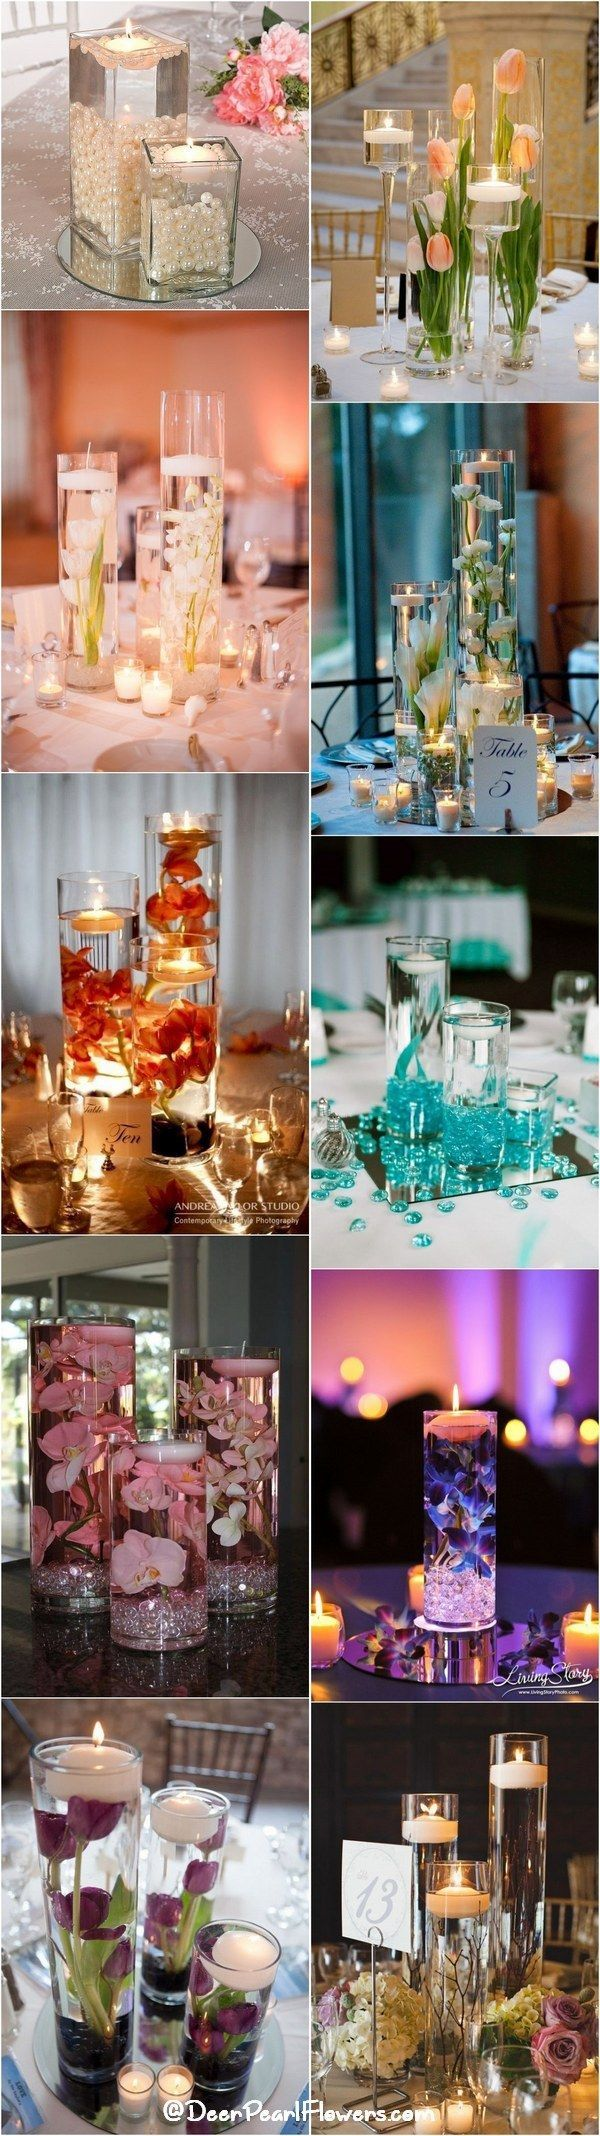 20 Impossibly Romantic Floating Wedding Centerpieces Centerpiece